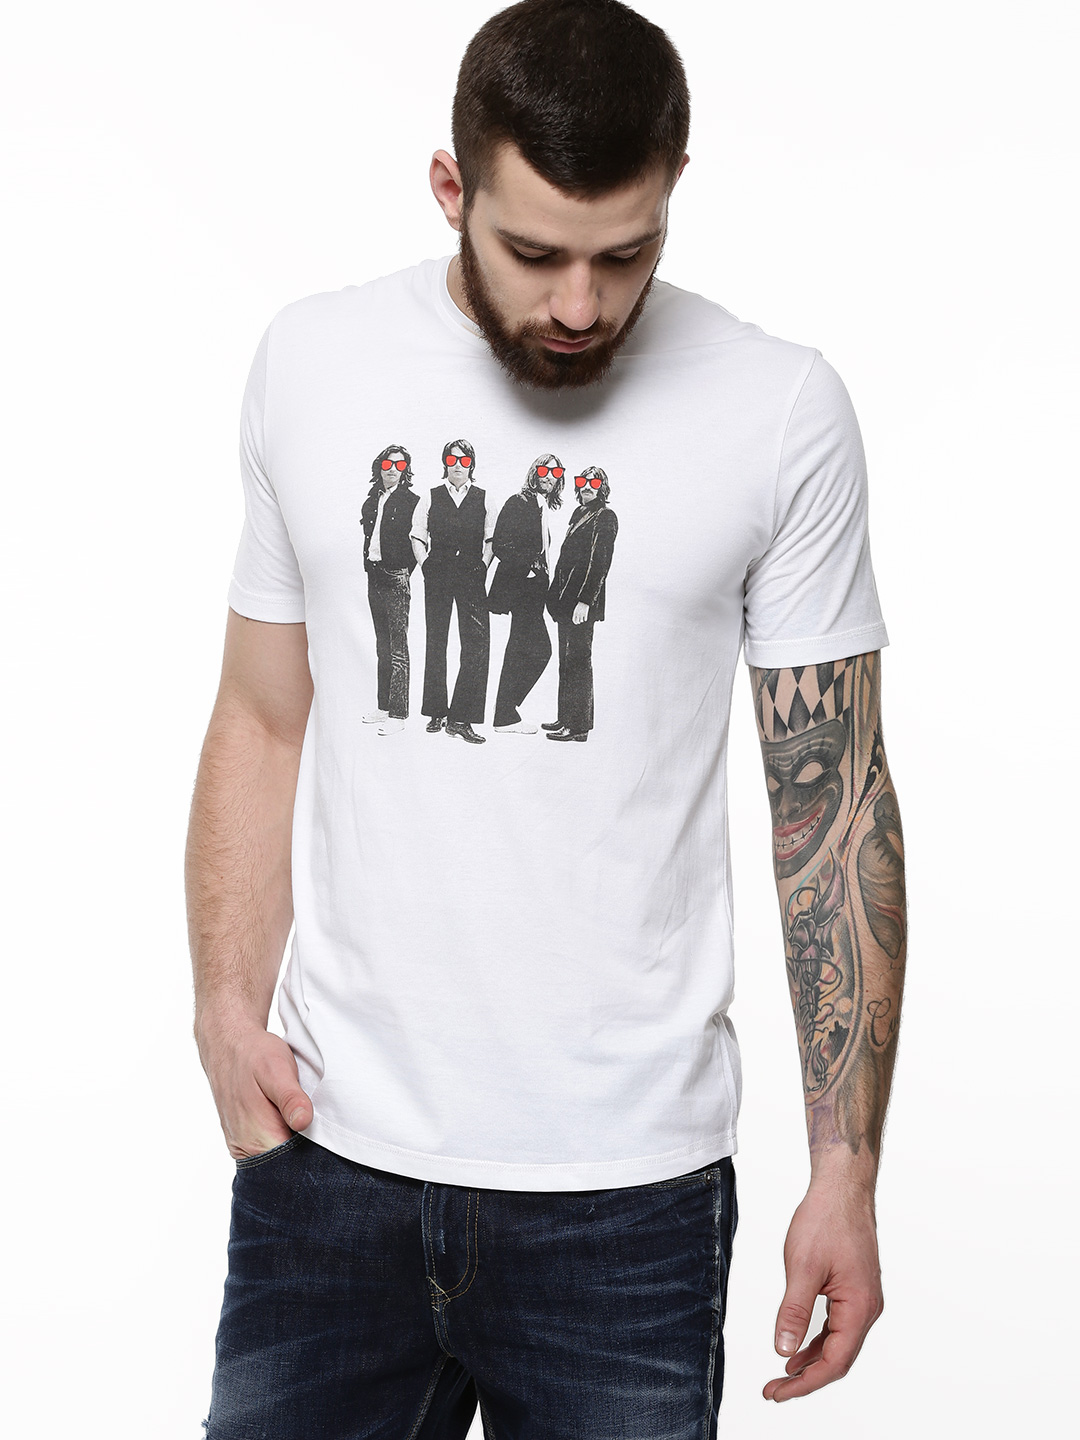 Brown Boy White Beatles Rock Band Print T-Shirt As Seen On Arjun Kapoor 1